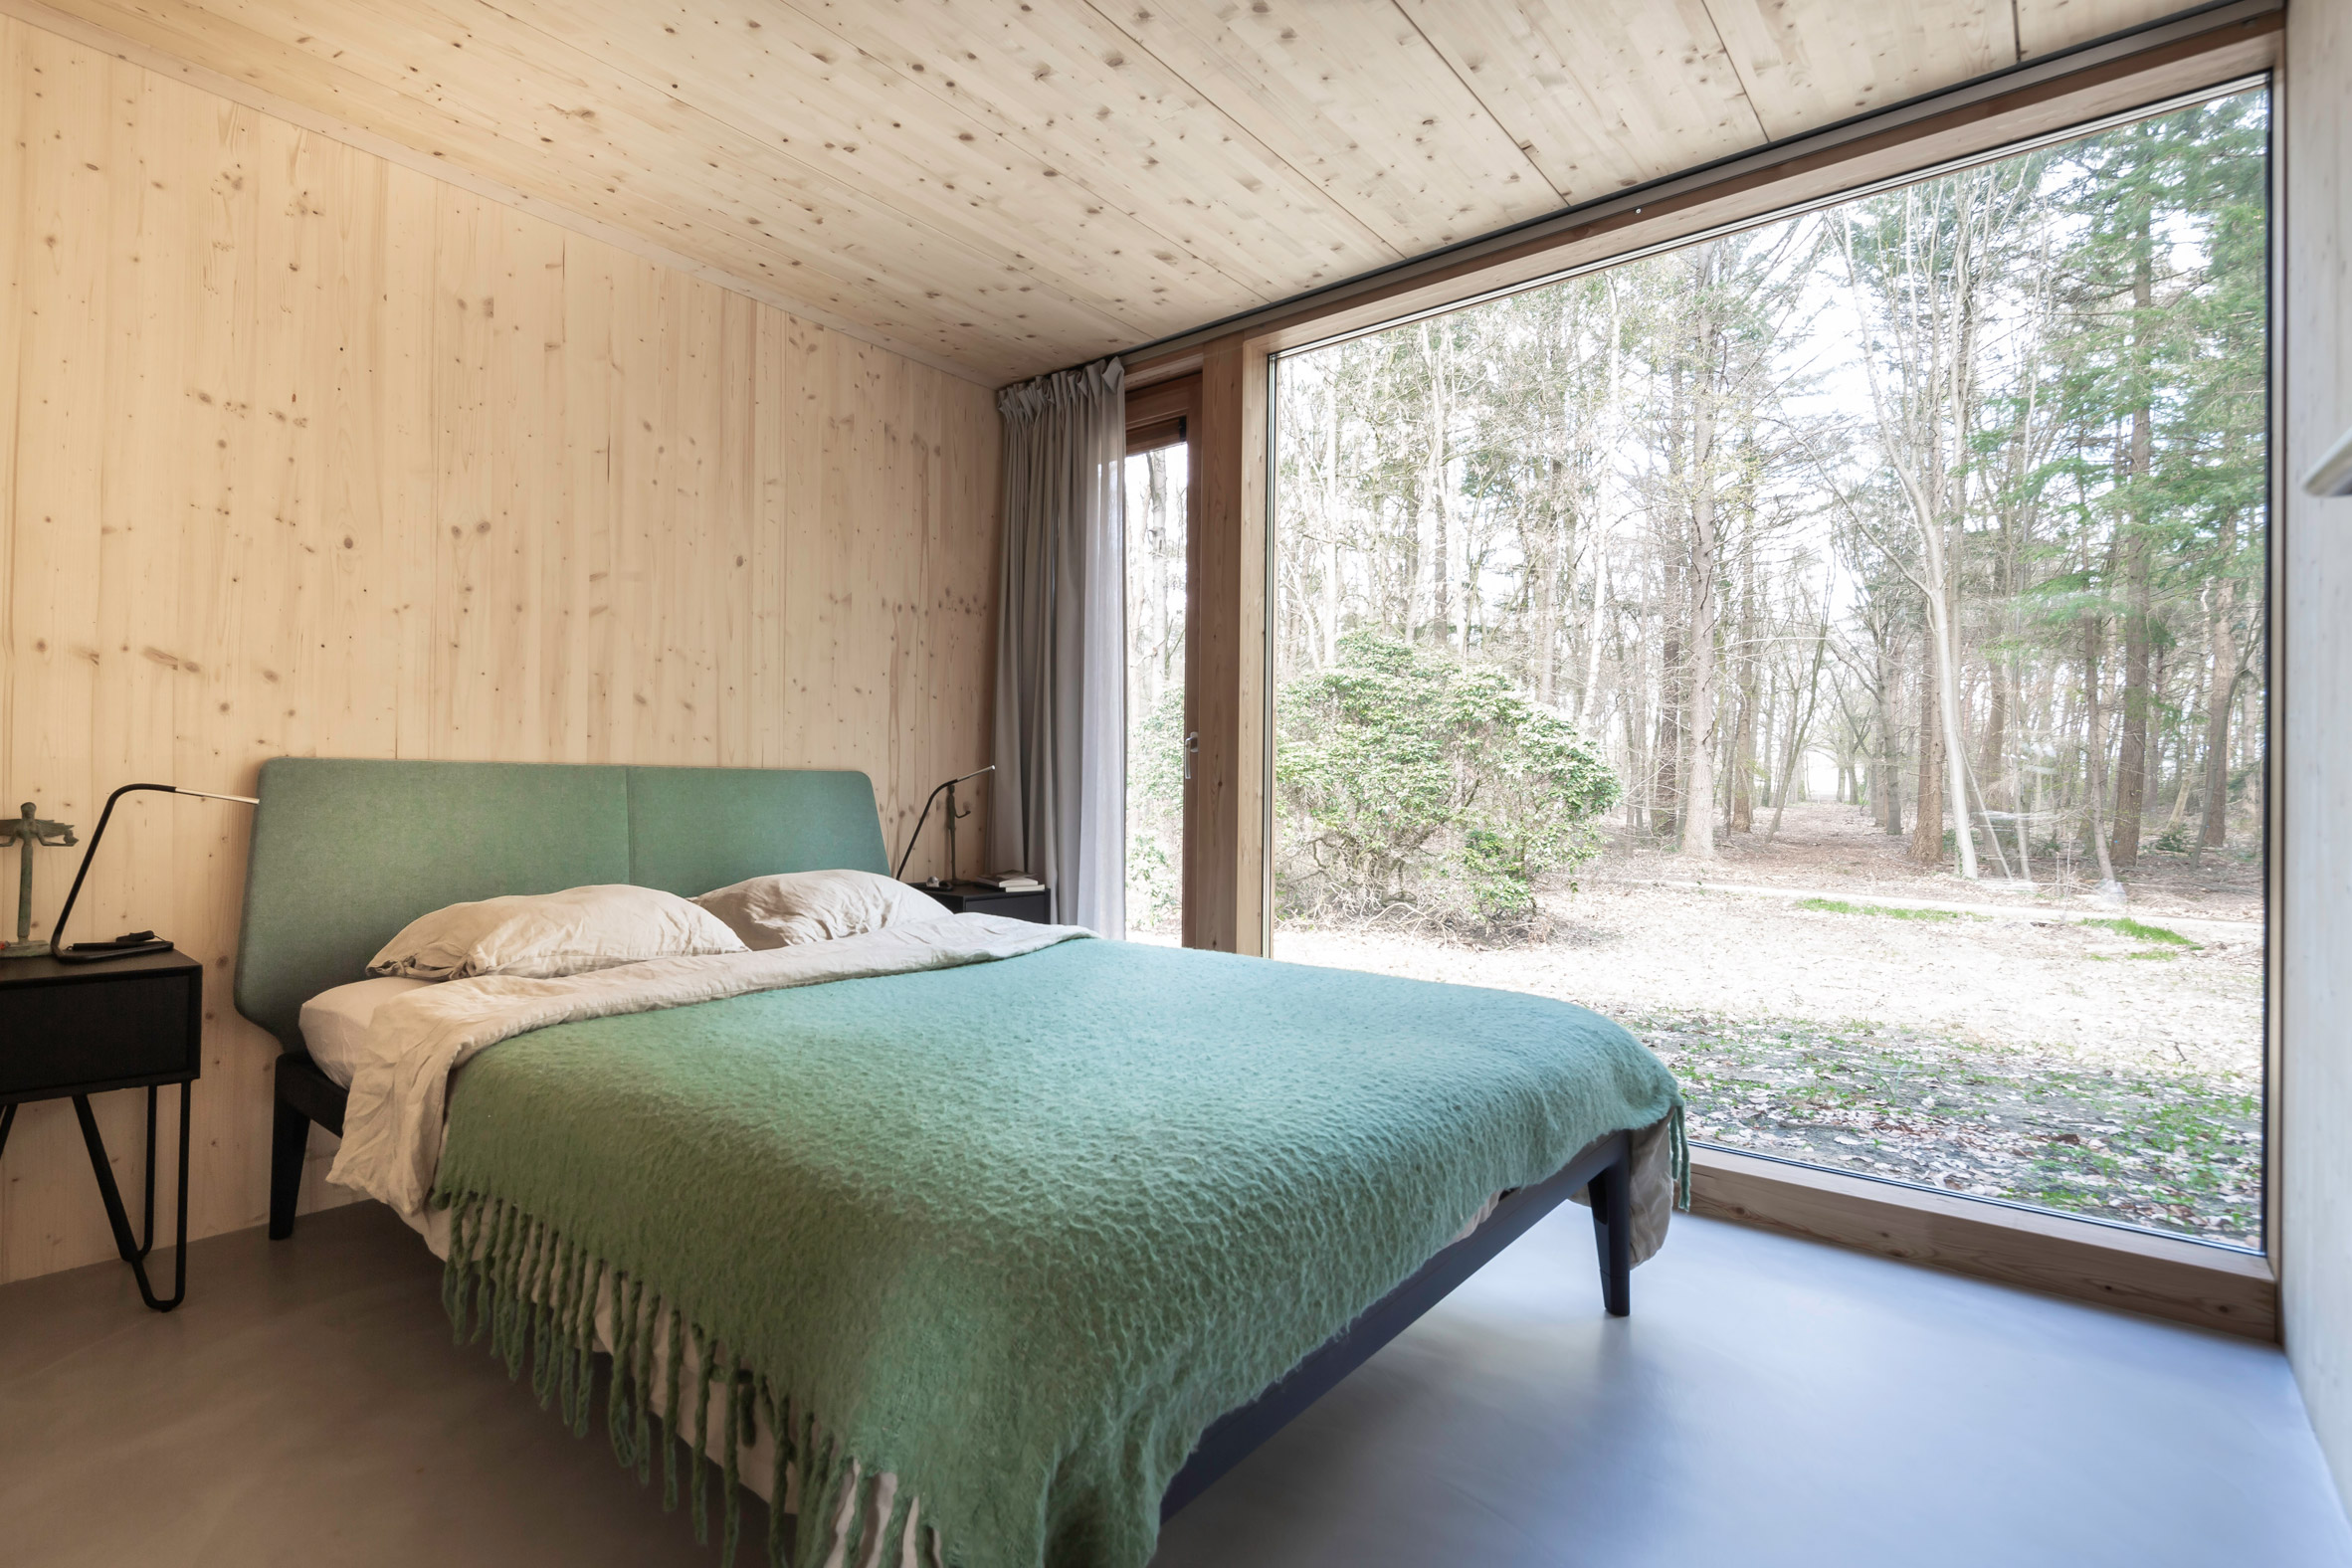 A bedroom with a floor-to-ceiling window